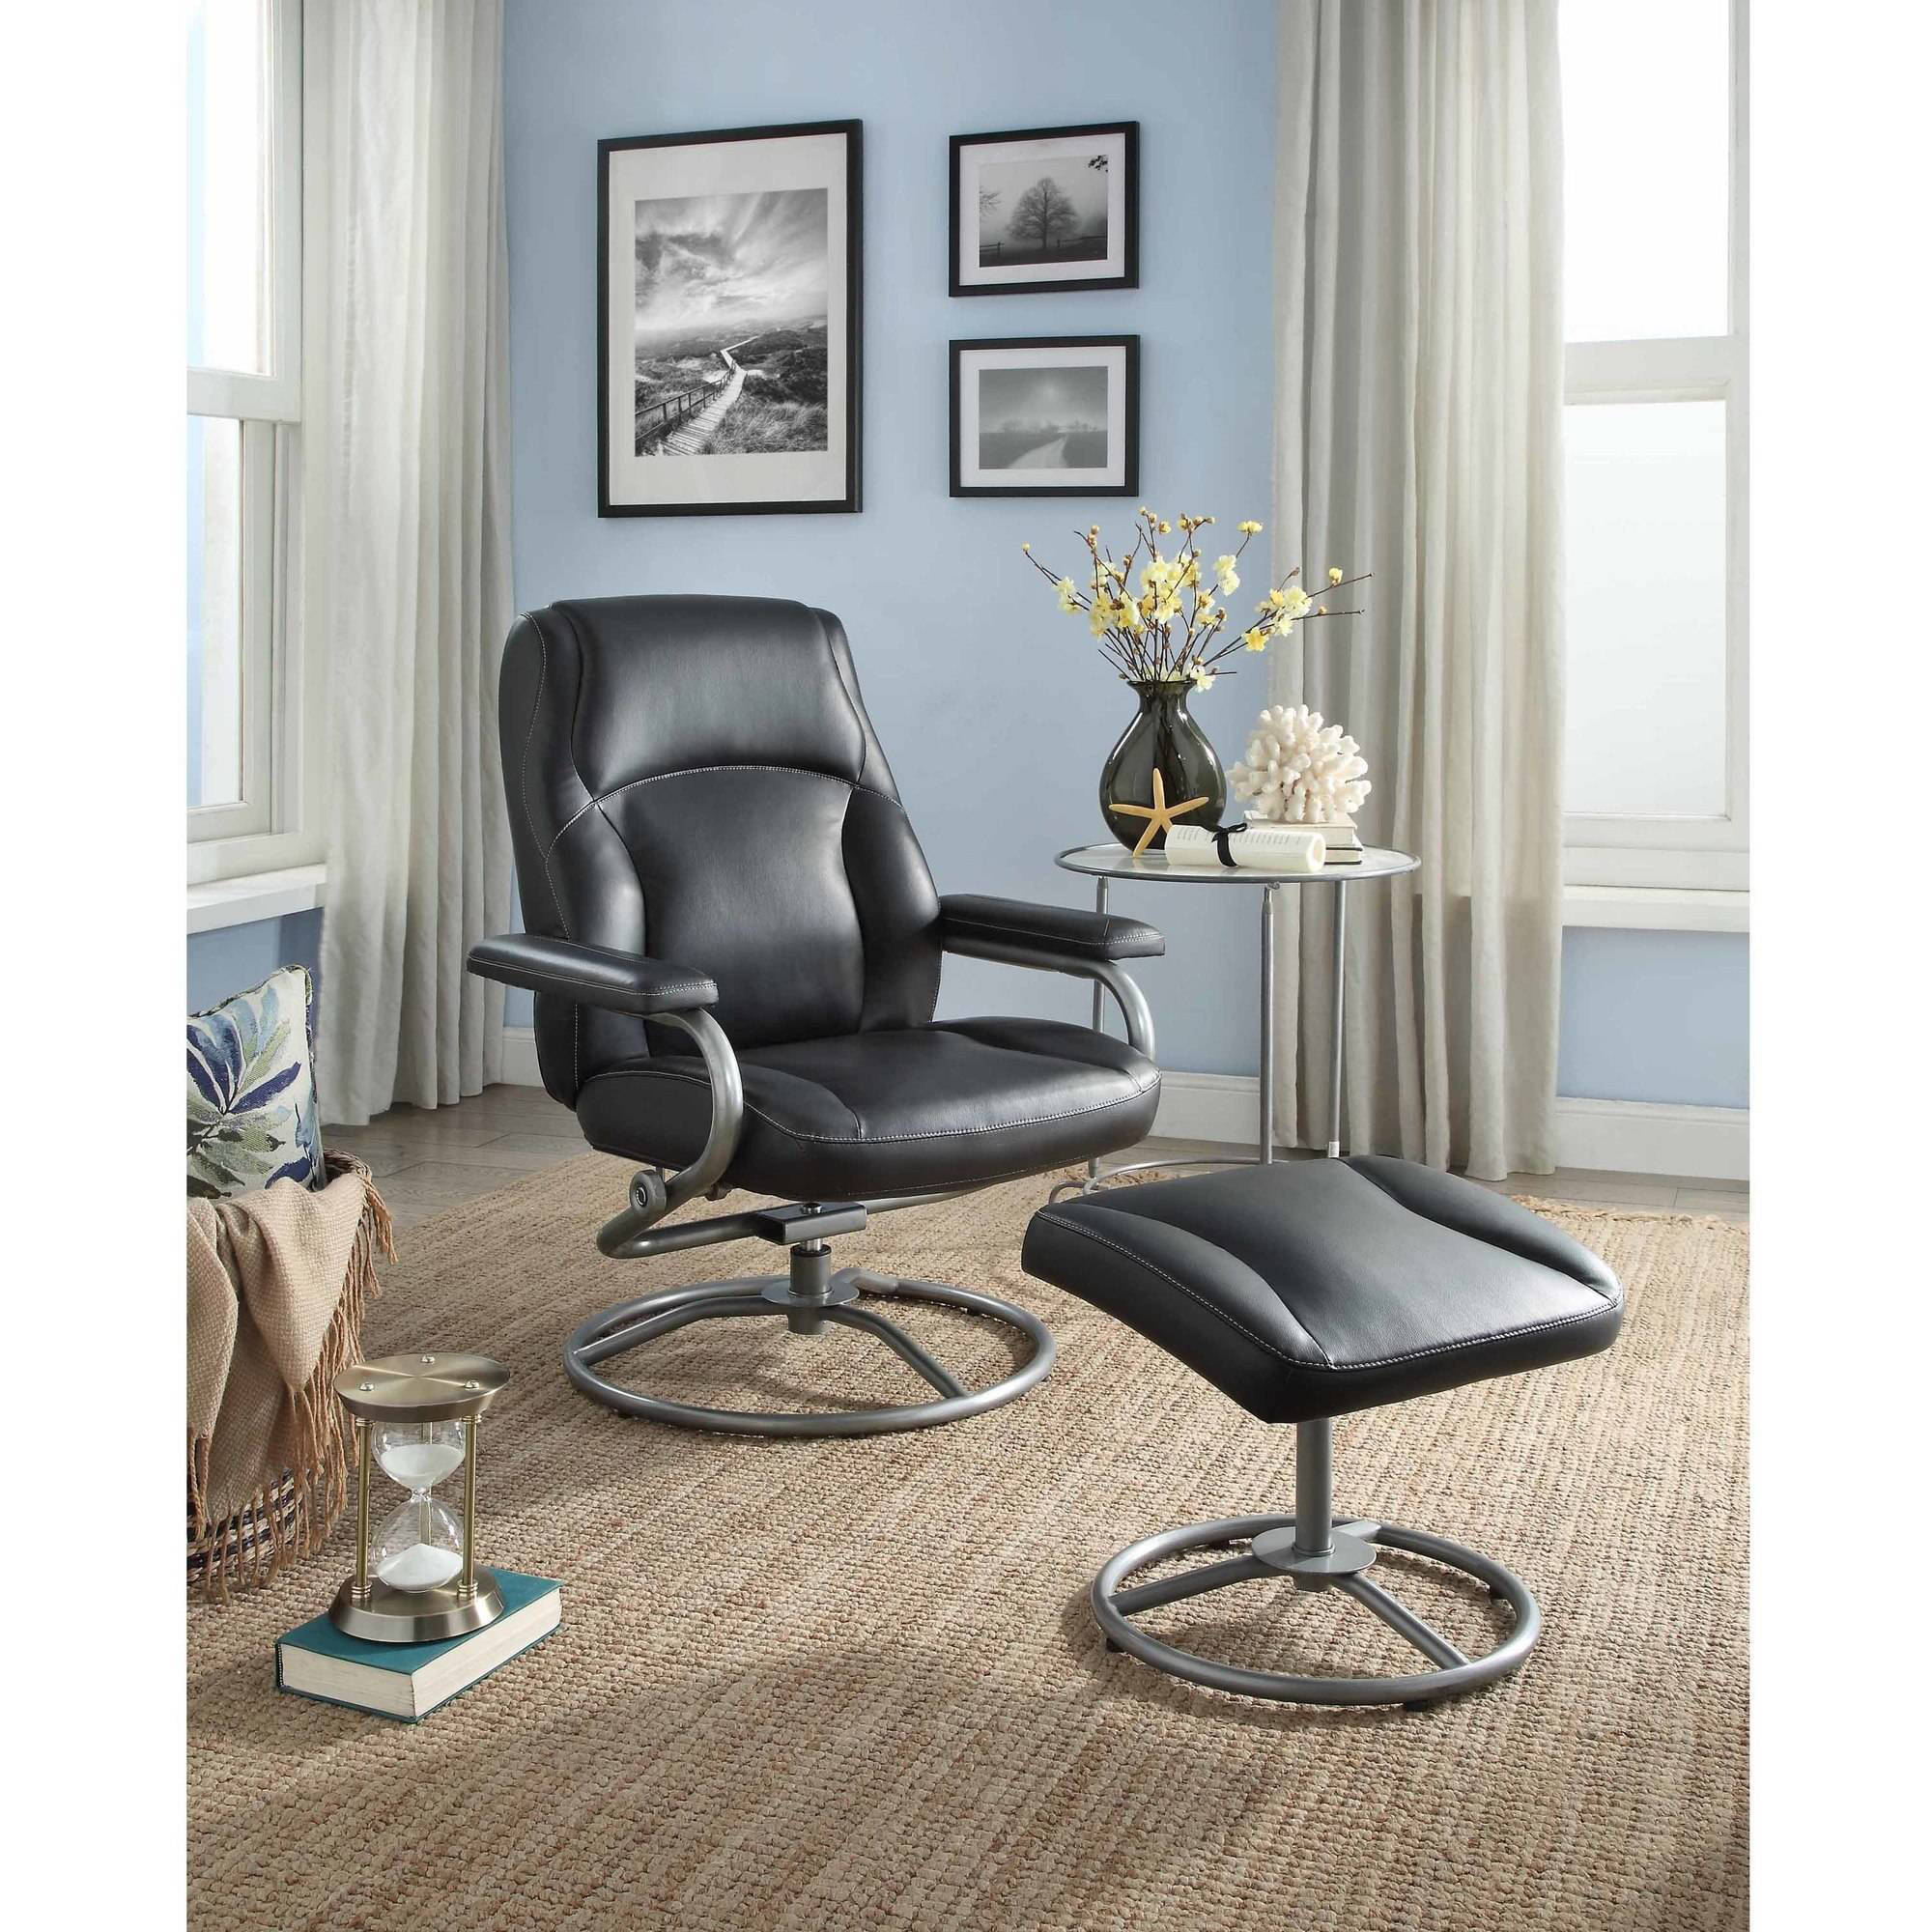 Chair Leather Reclining Swivel Mainstays Plush Pillowed Recliner Swivel Chair And Ottoman Set